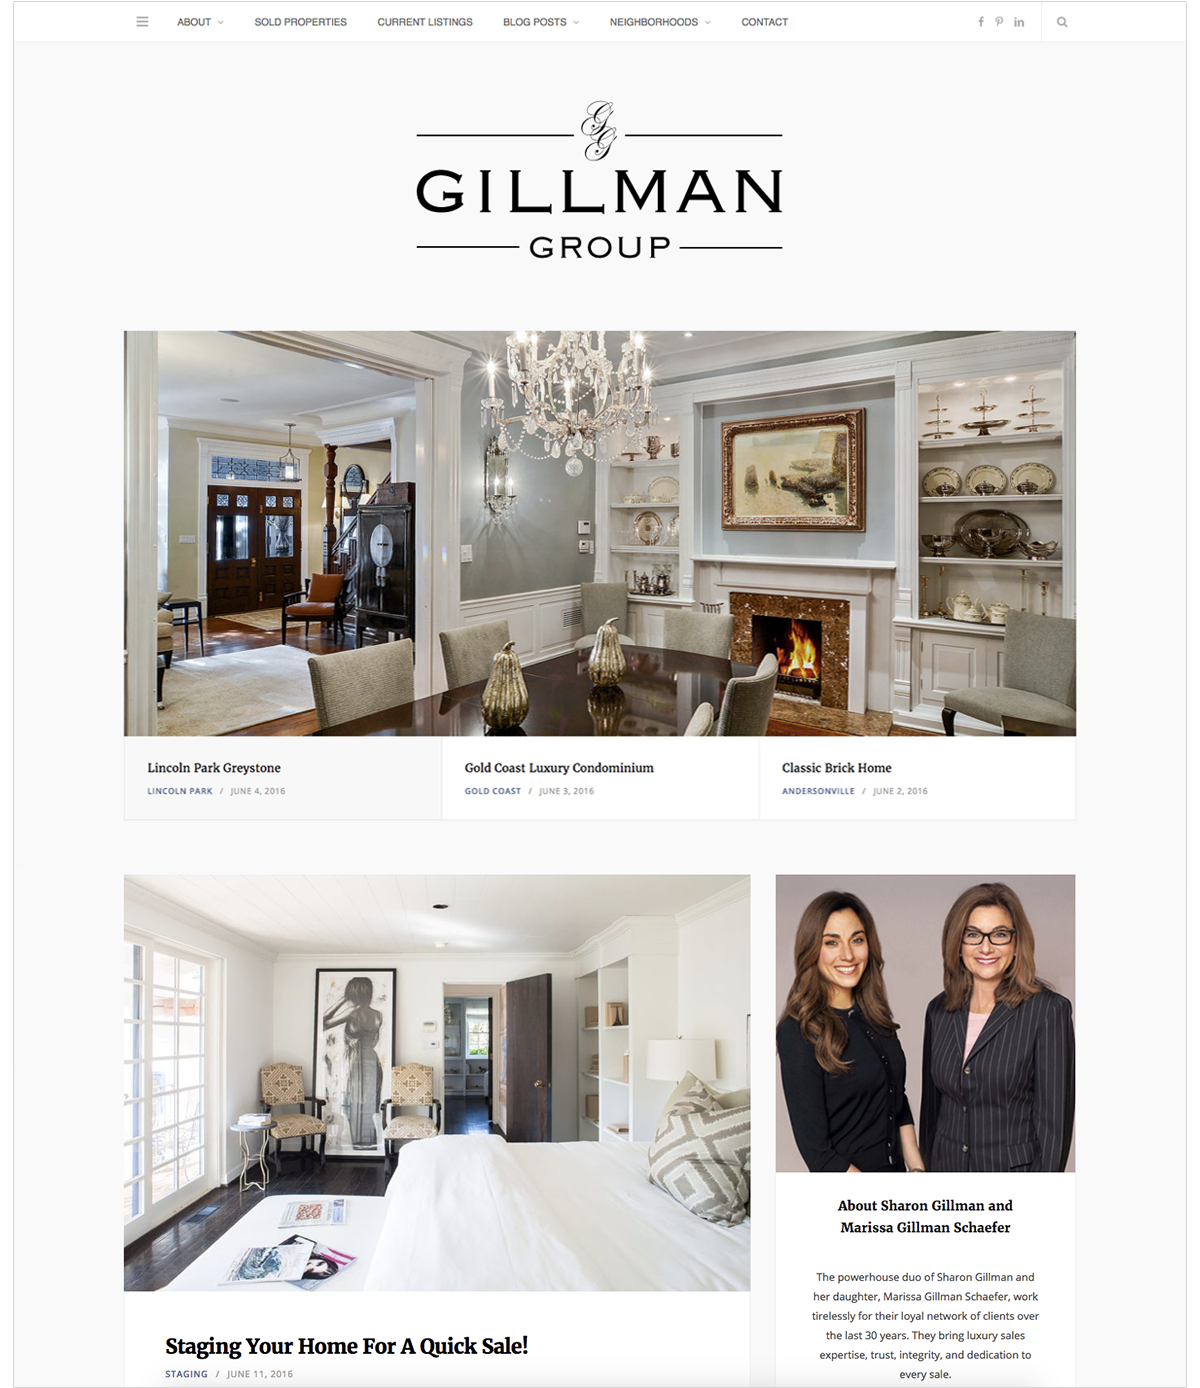 Gillman Group Real Estate - Work That Esque